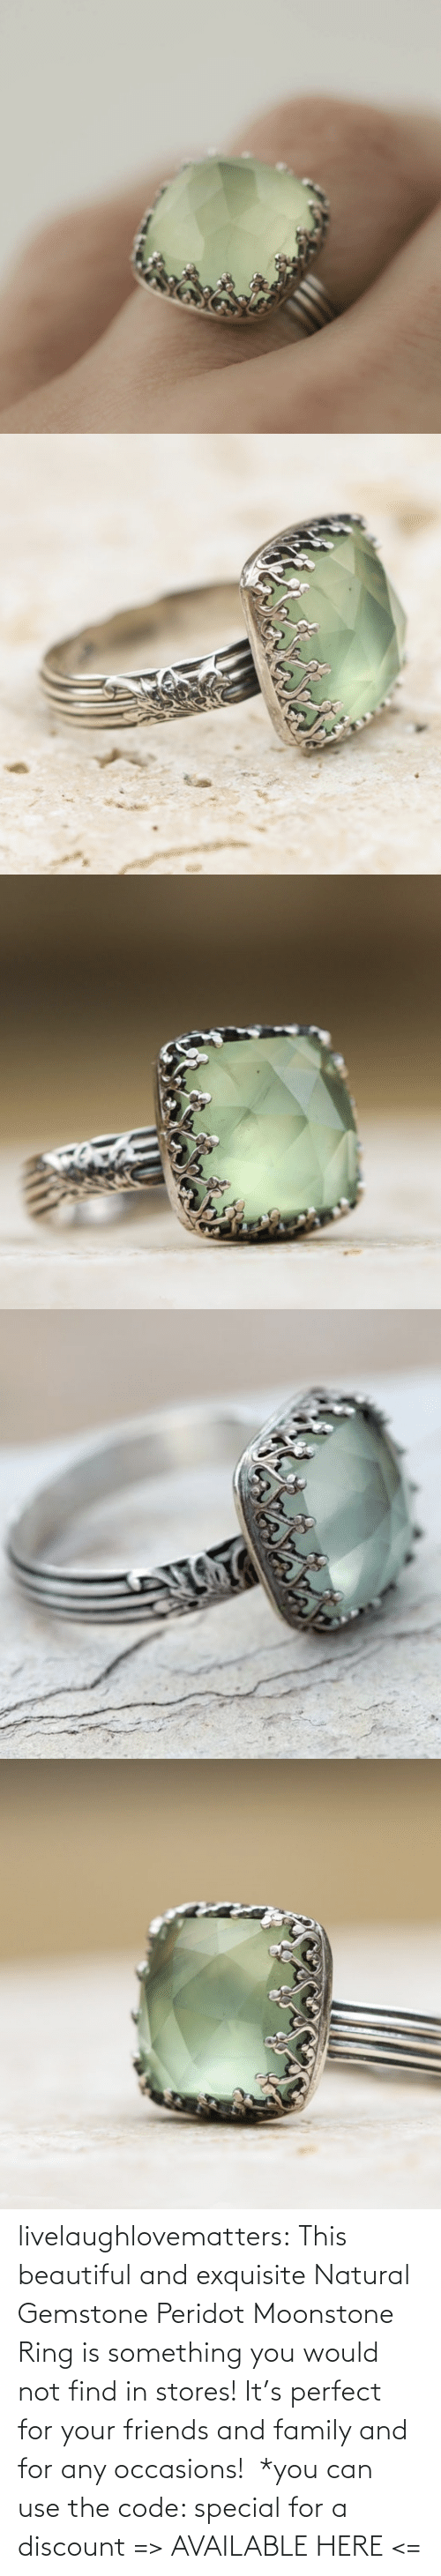 Admin: livelaughlovematters: This beautiful and exquisite Natural Gemstone Peridot Moonstone Ring is something you would not find in stores! It's perfect for your friends and family and for any occasions!  *you can use the code: special for a discount => AVAILABLE HERE <=